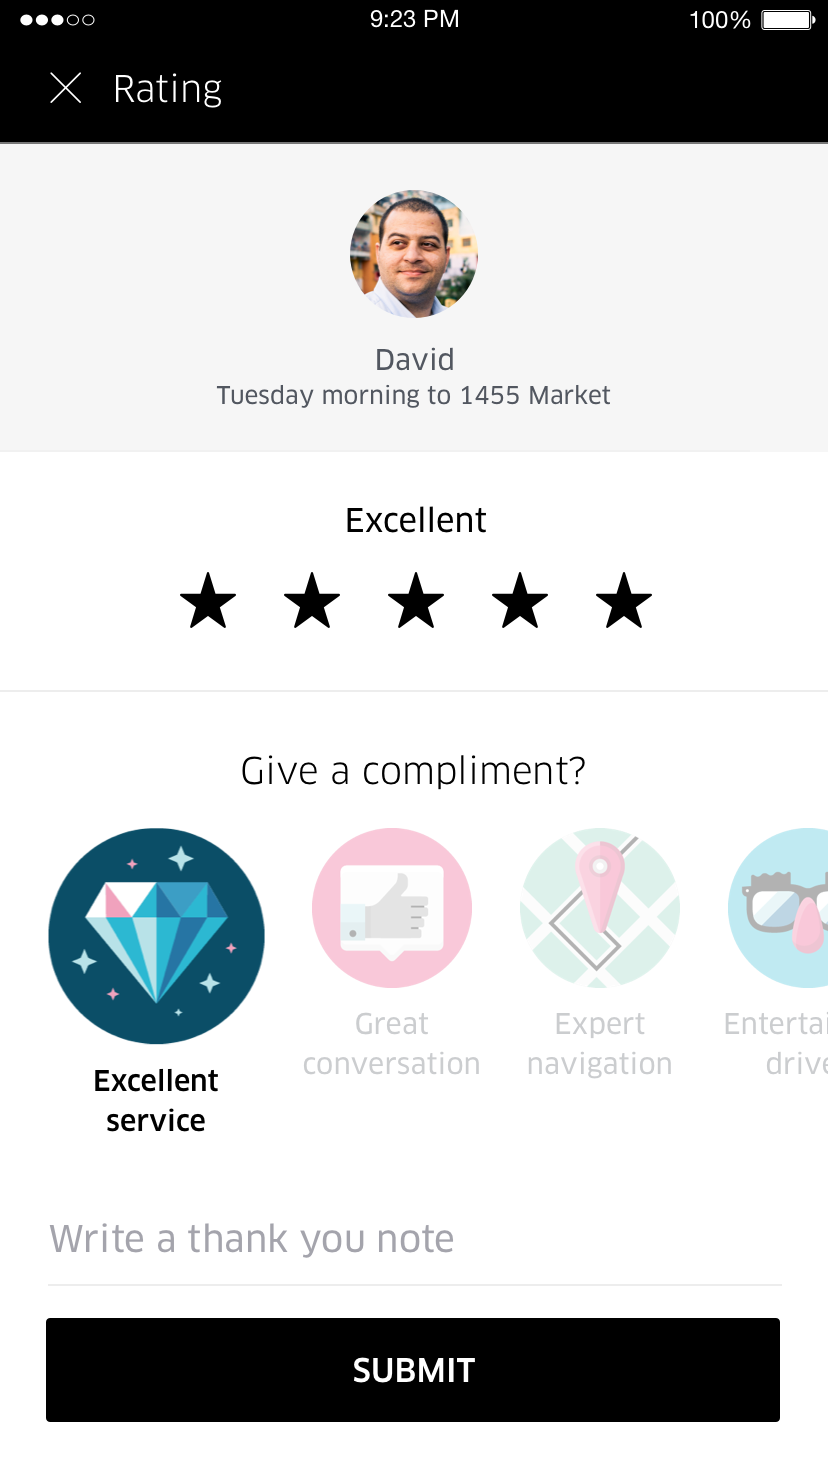 Product feedback example from Uber